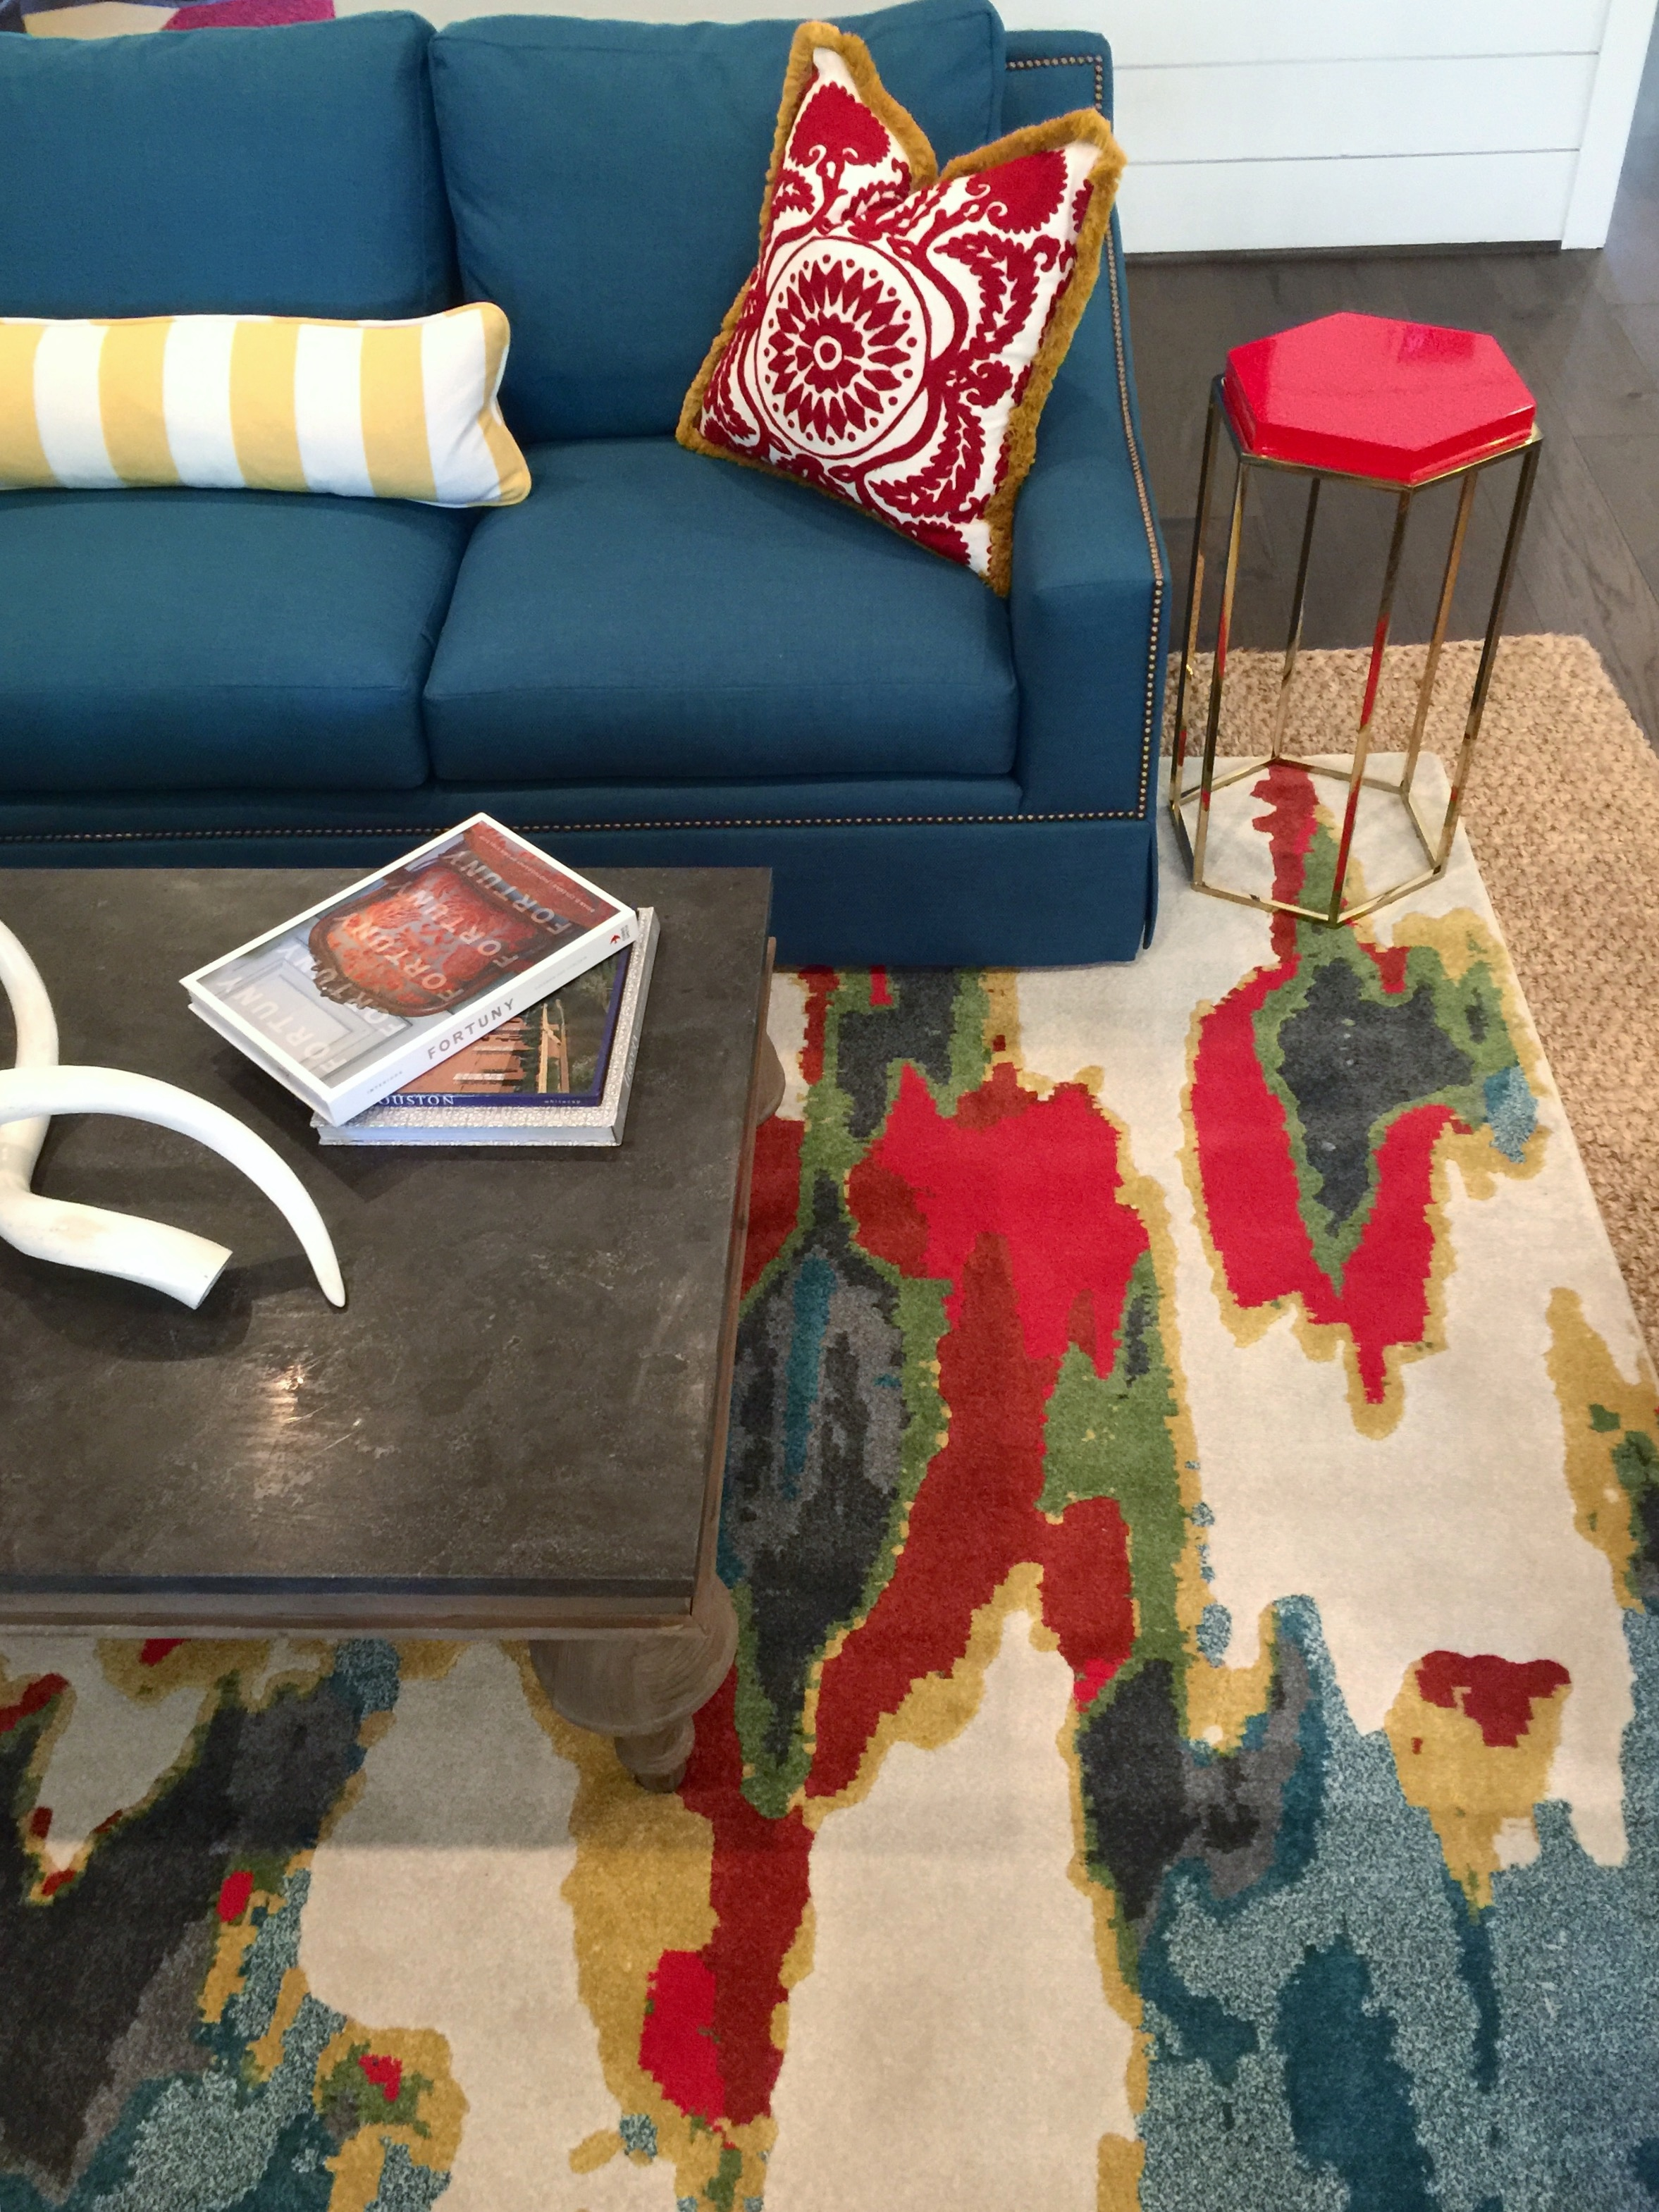 Southern Living Showcase Home - Living Room with colorful rug and furniture, Designed by Chairma Design Group #rug